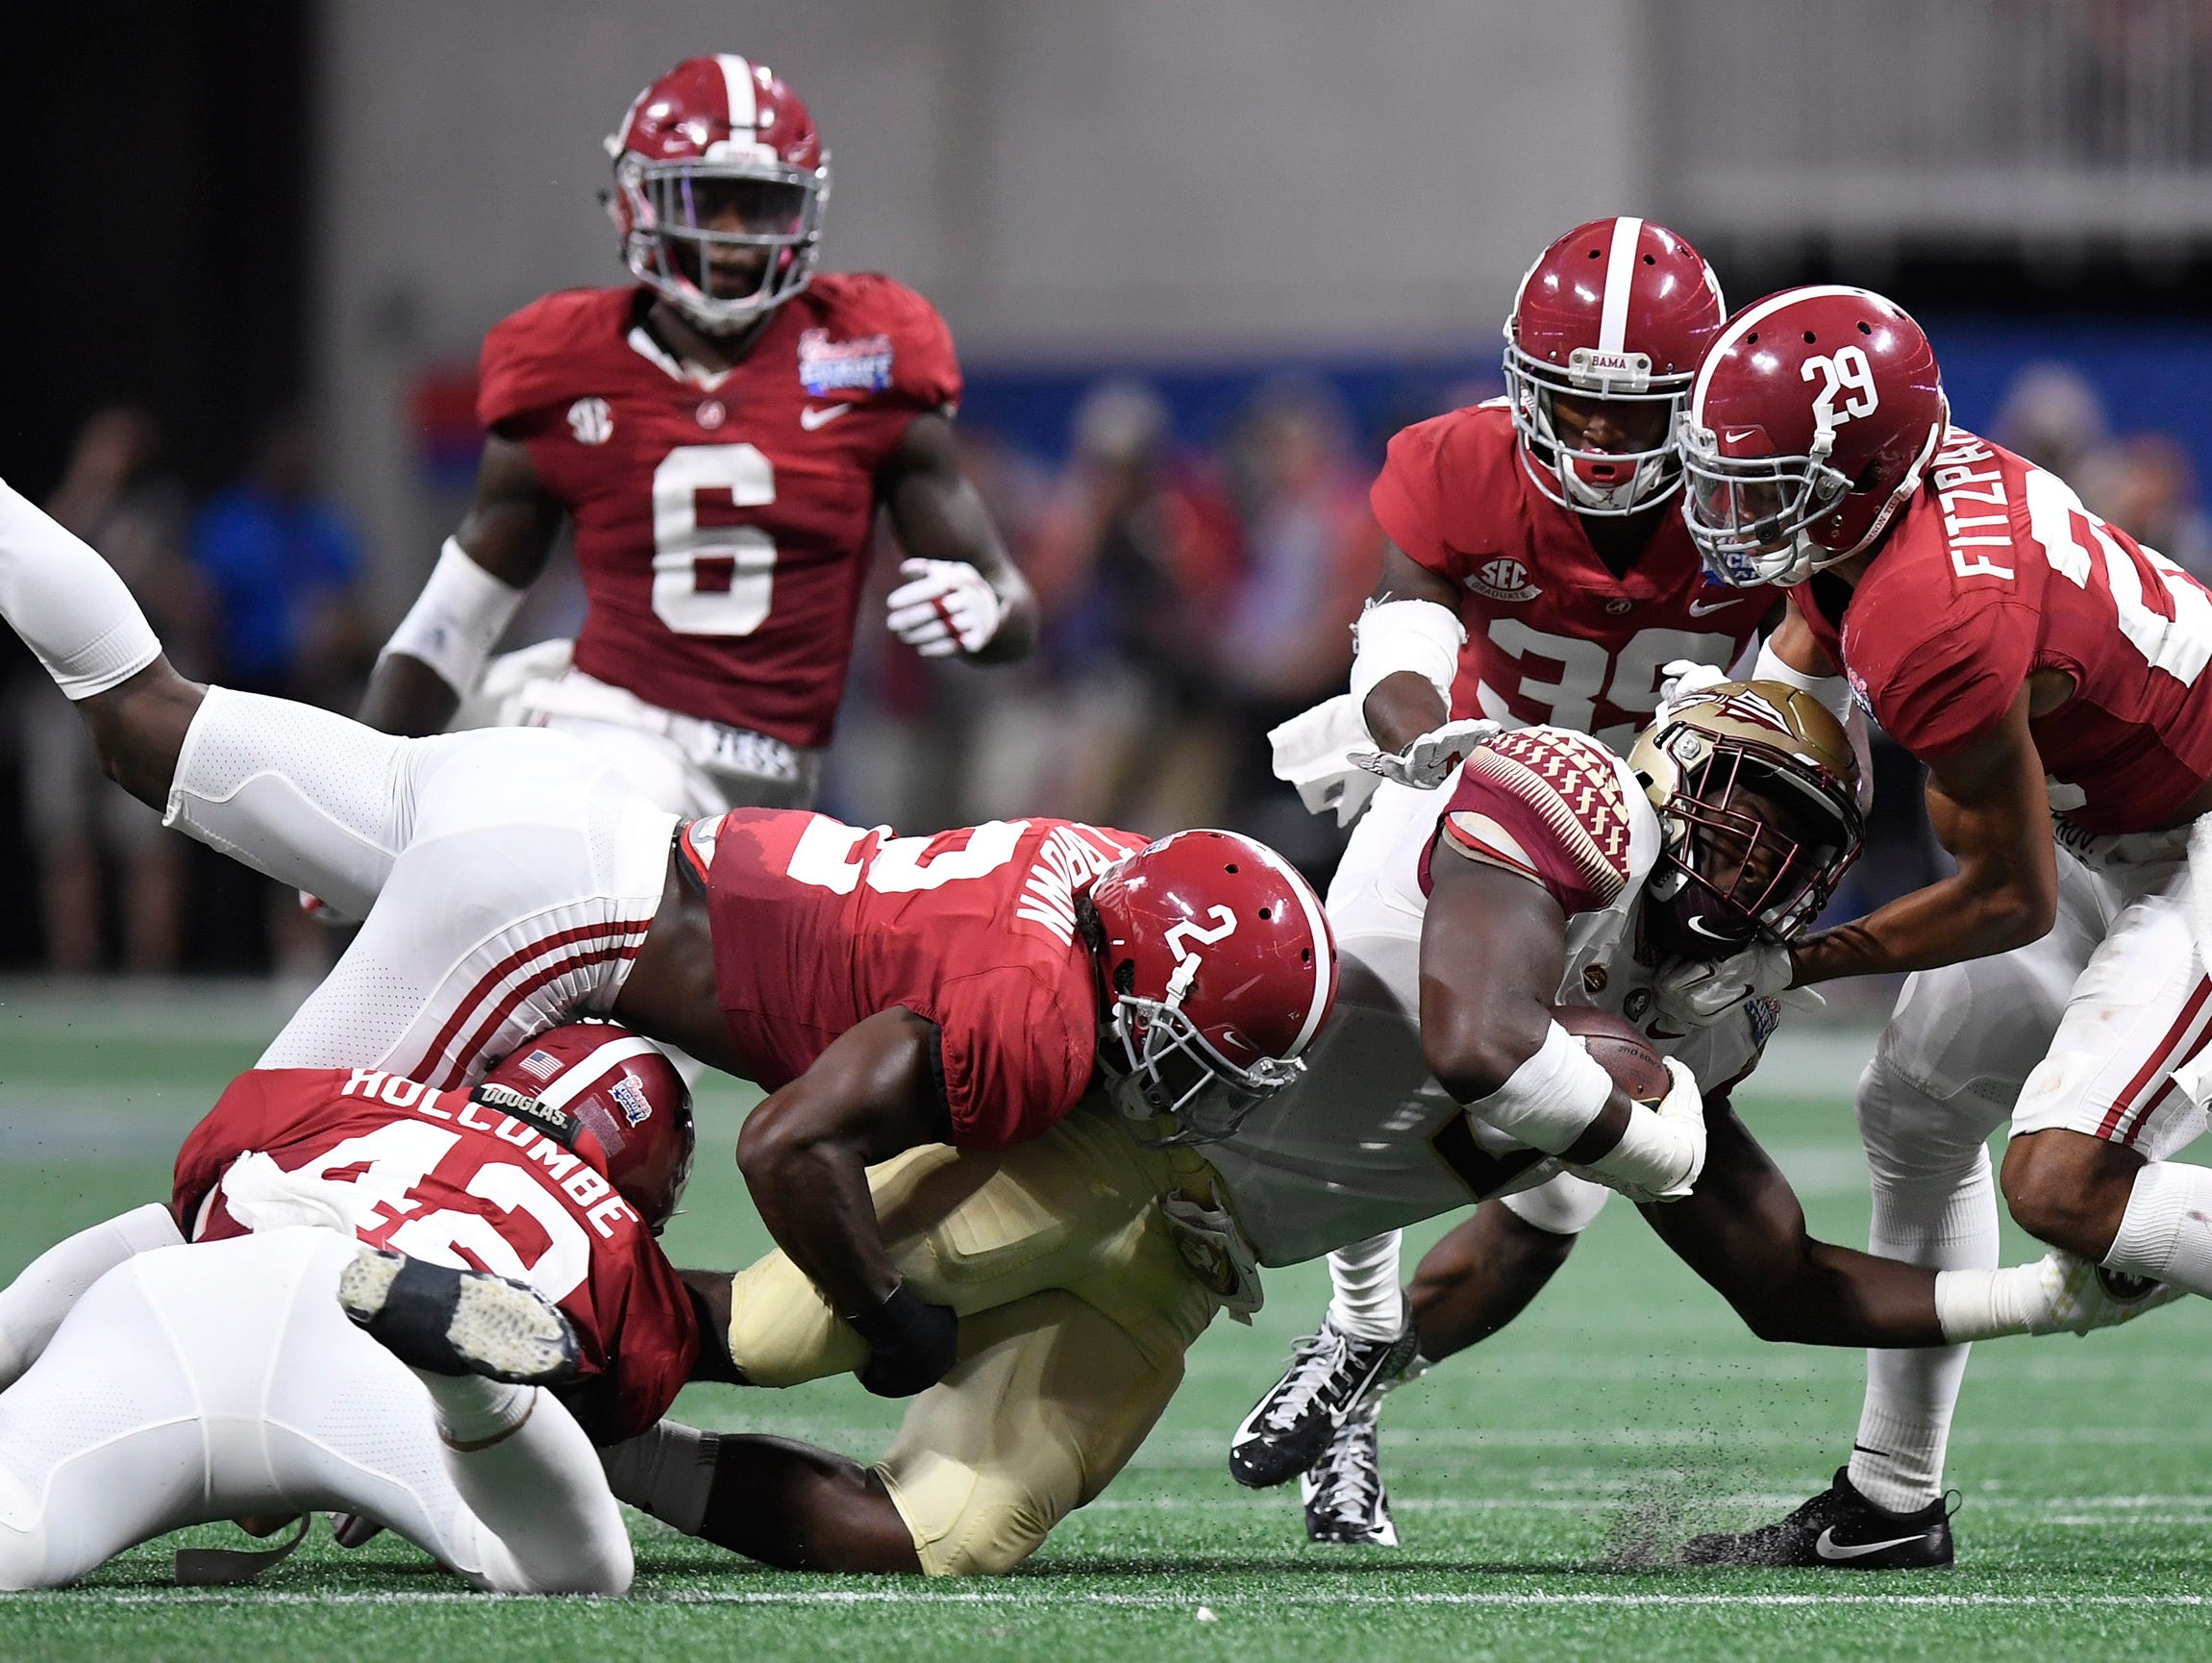 Florida State running back Jacques Patrick (9) is stopped by Alabama defensive back Tony Brown (2), defensive back Minkah Fitzpatrick (29) and defensive back Levi Wallace (39) in the Chick-fil-a Classic at the Mercedes - Benz Stadium in Atlanta, Ga., on Saturday September 2, 2017. (Mickey Welsh / Montgomery Advertiser)